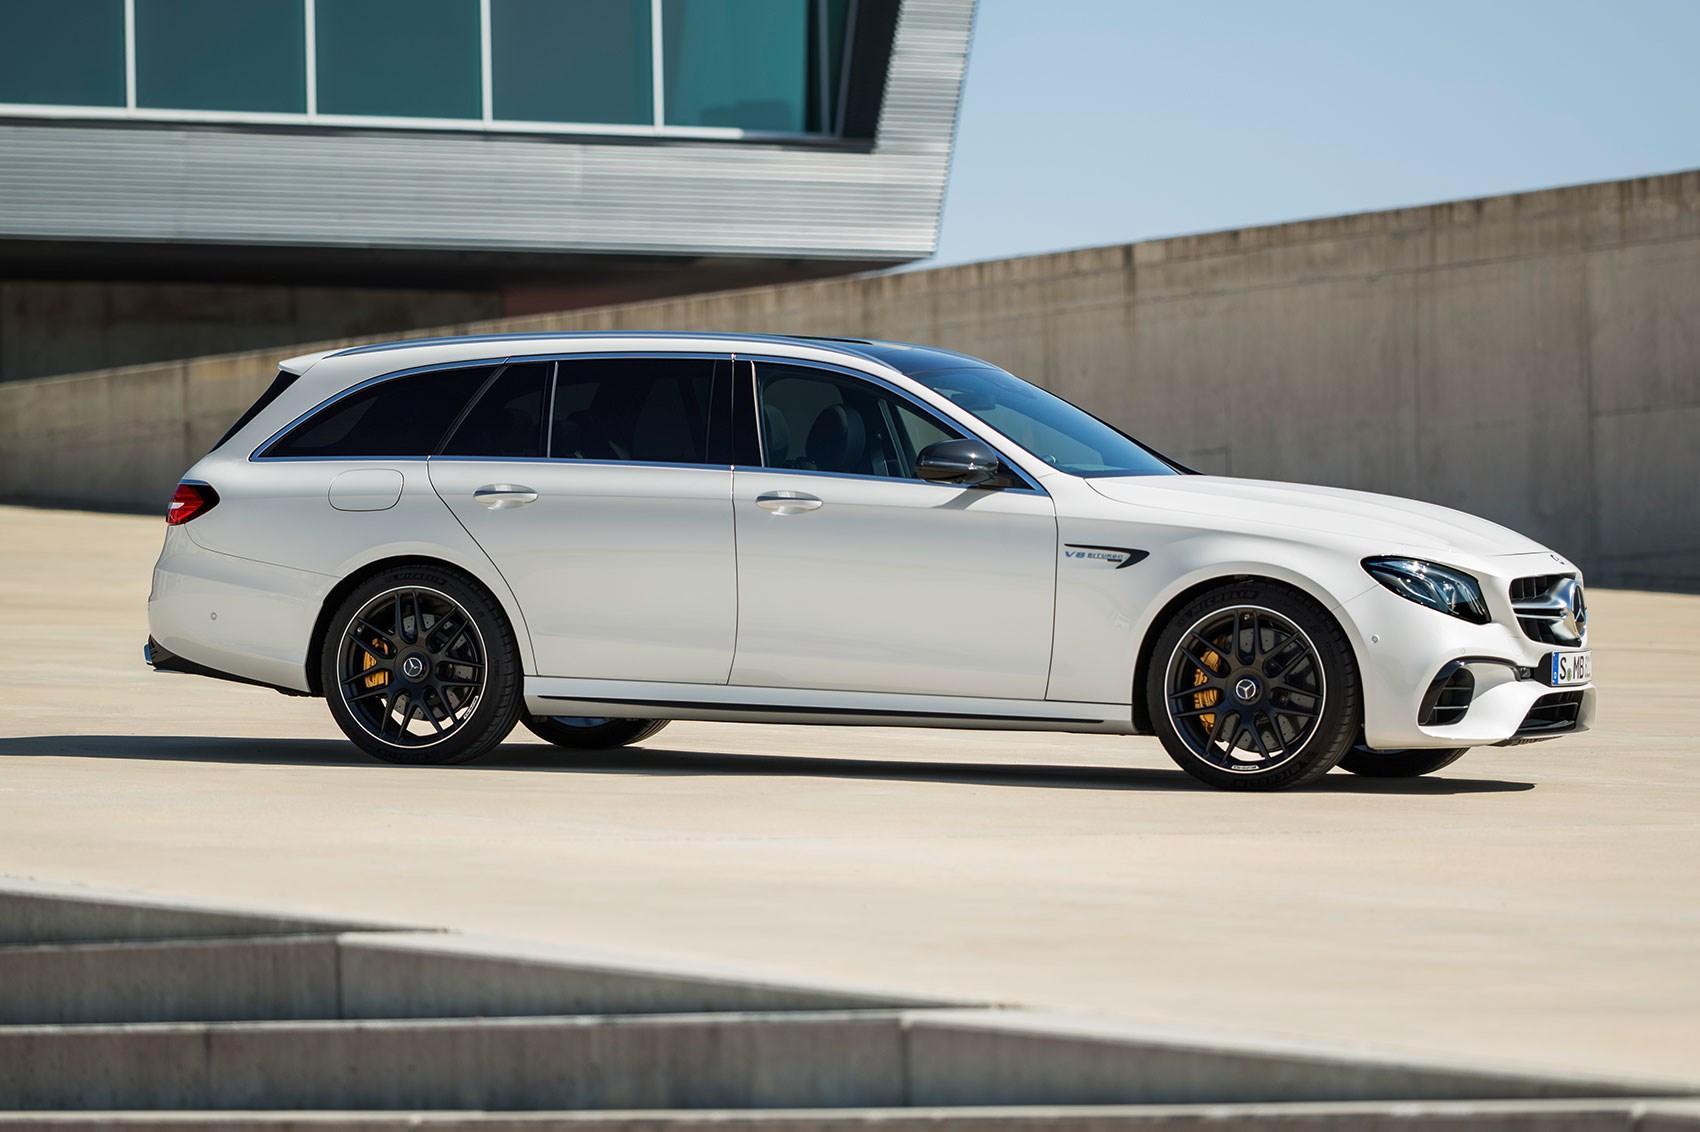 Mercedes Amg E63 4matic Estate Prices Revealed For 2017